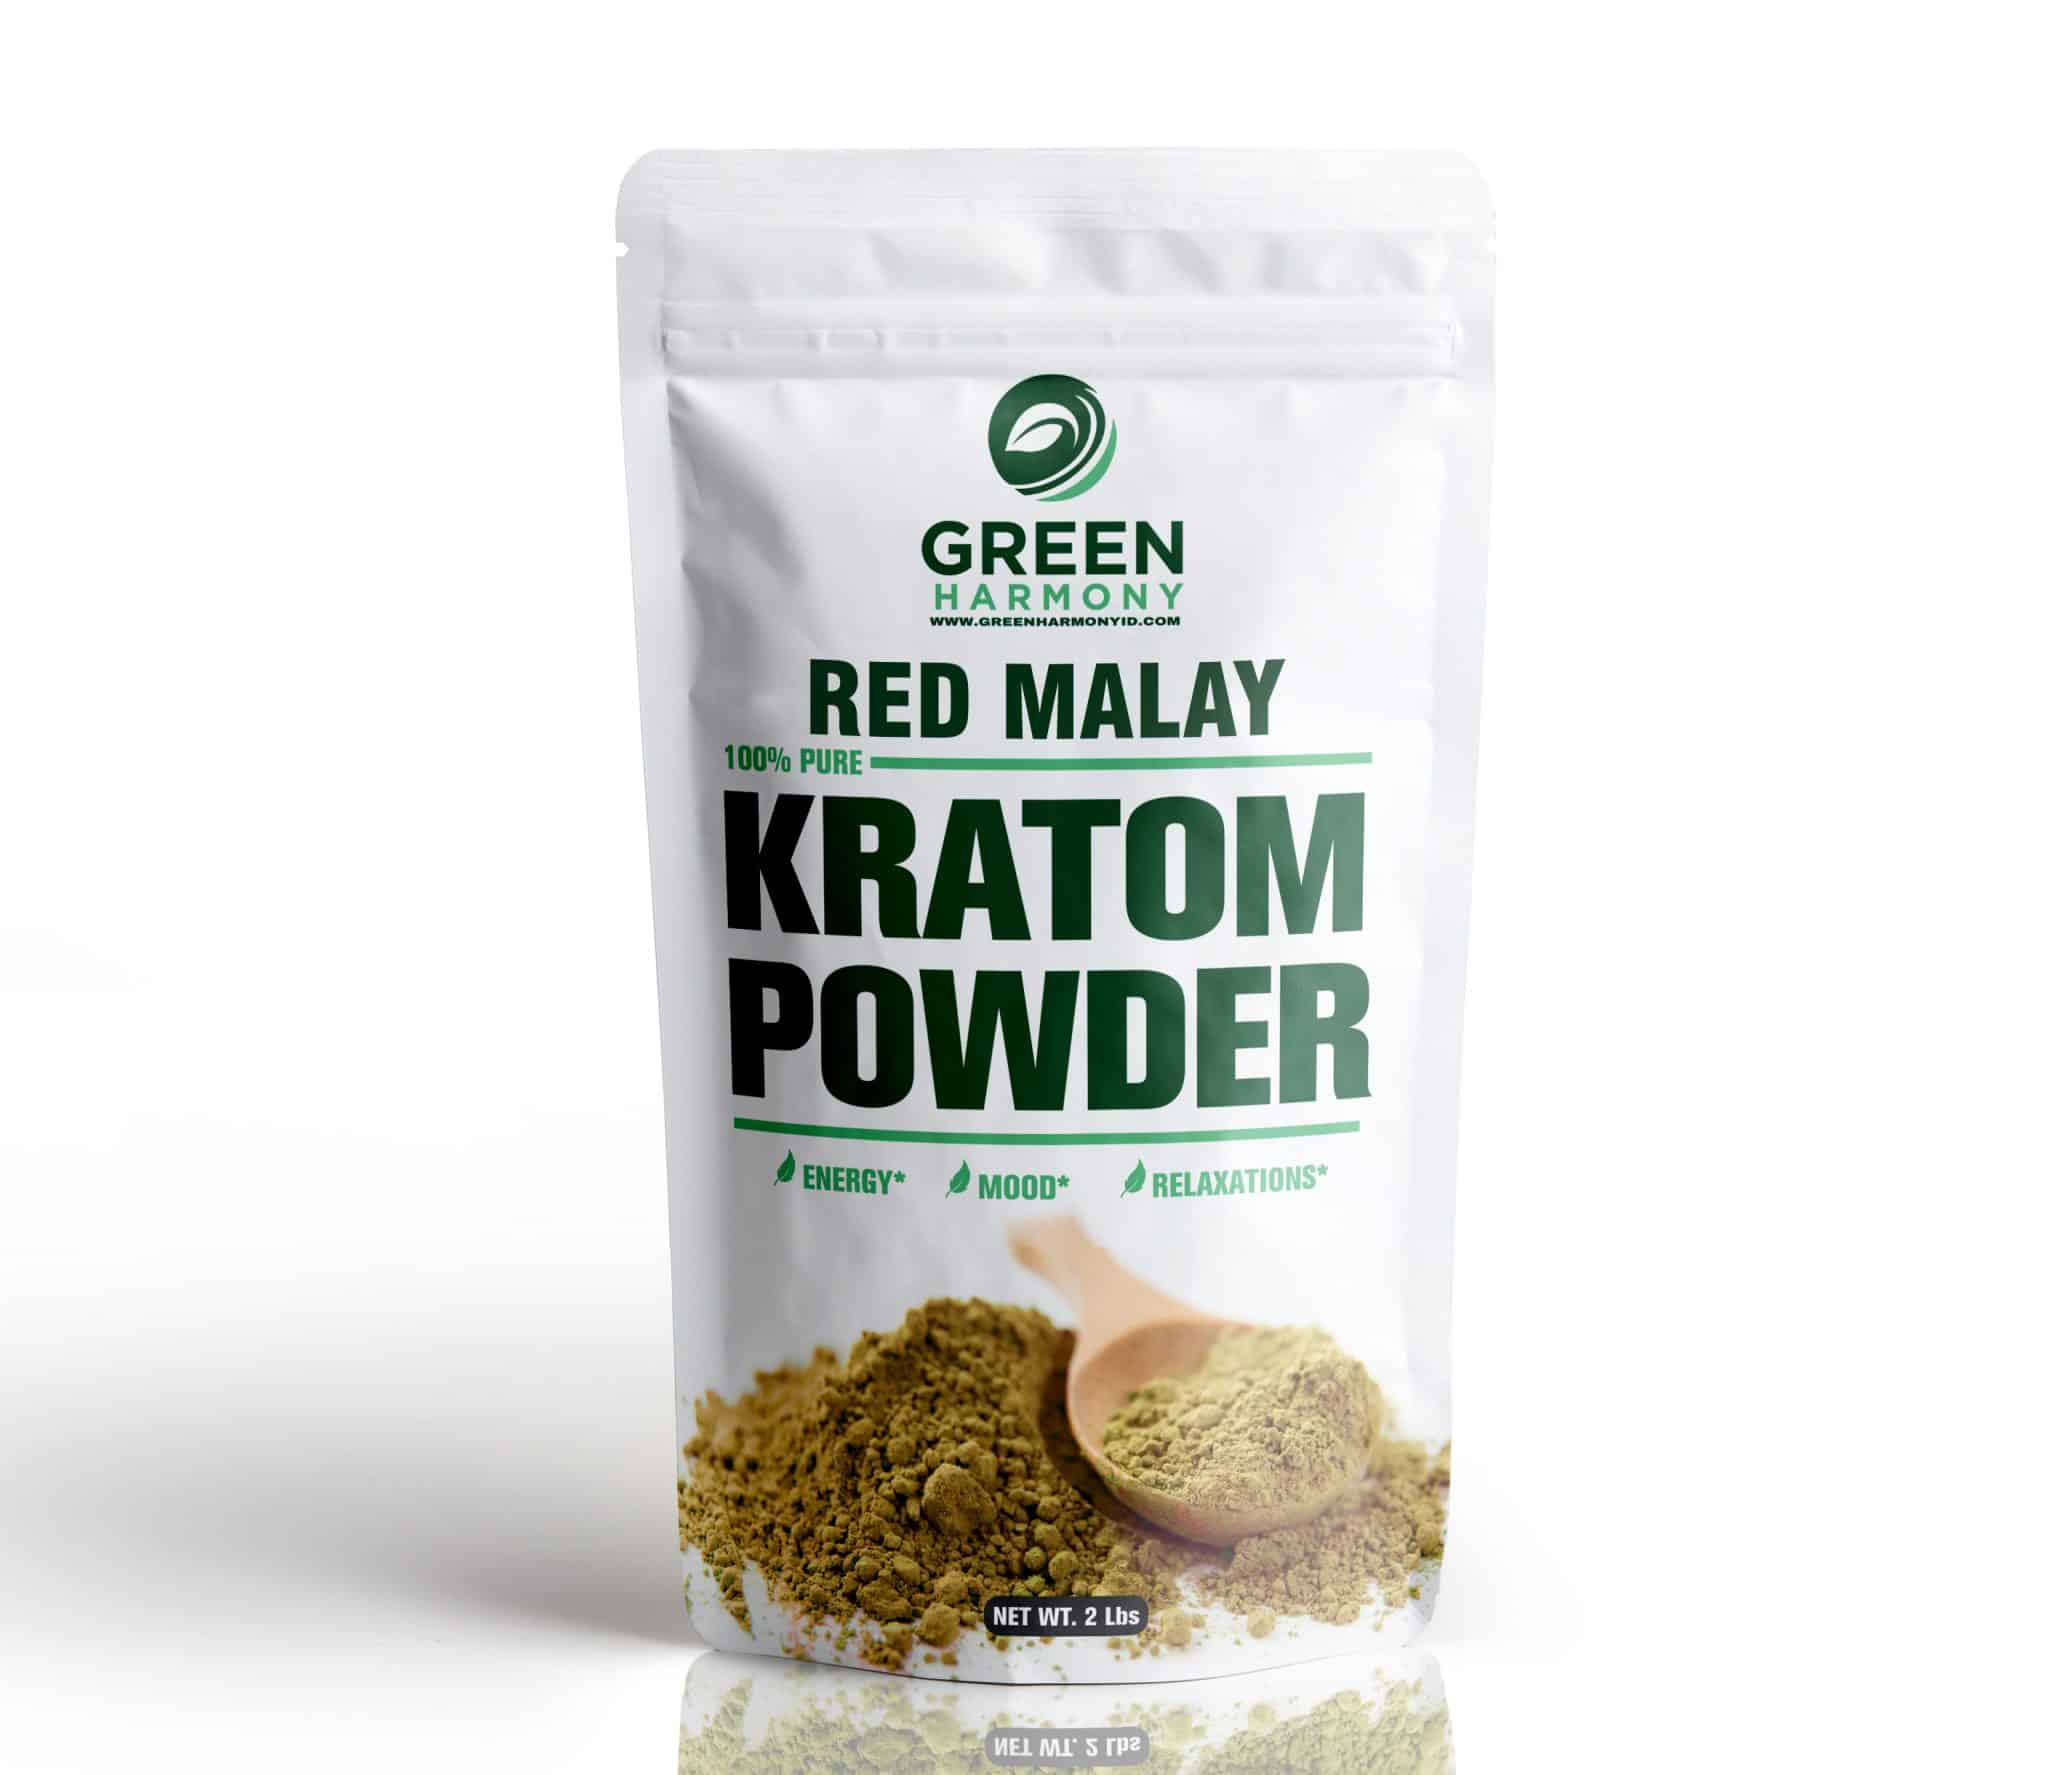 RED-MALAY Red Malay Kratom Strong Painkiller Effects